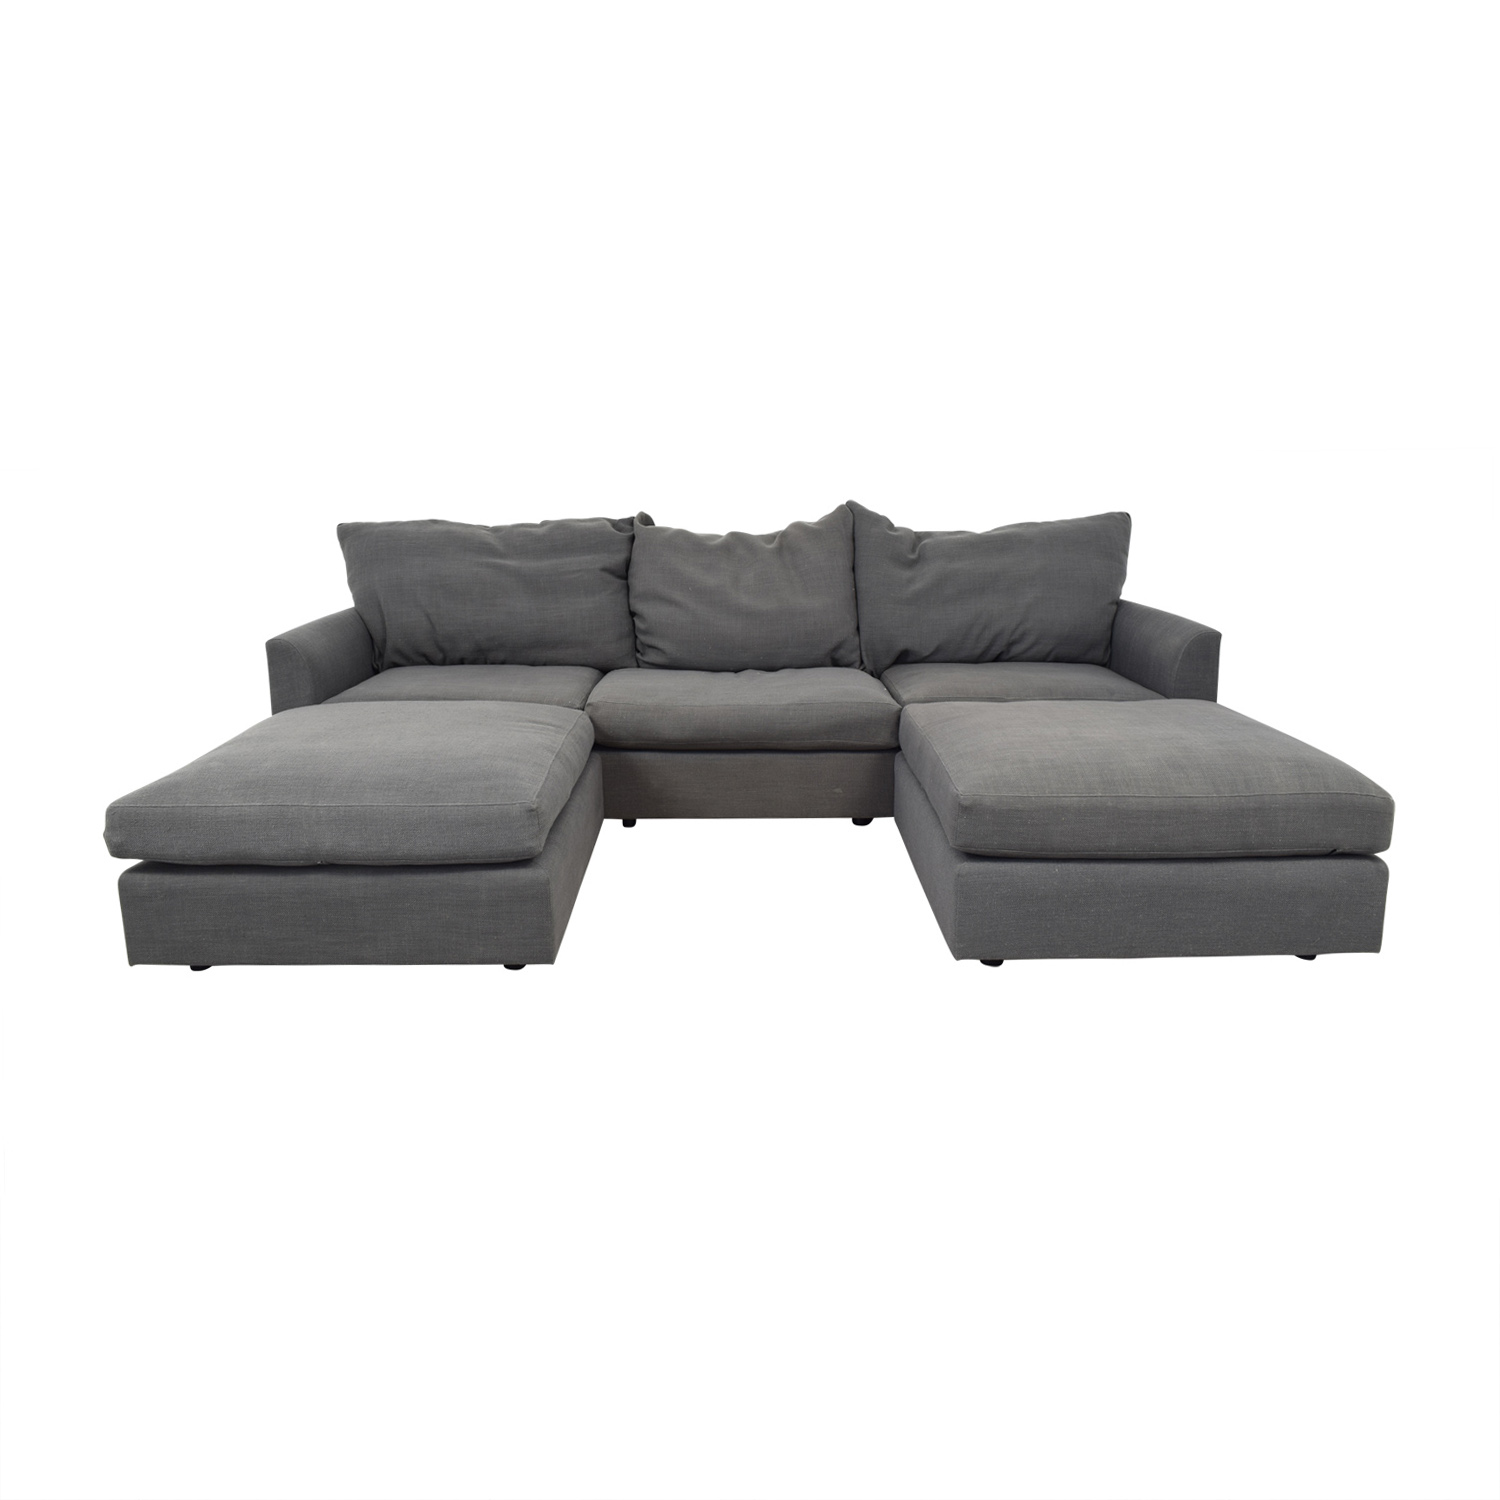 Mitchell Gold + Bob Williams Mitchell Gold + Bob Williams Big Easy Modular Sectional with Ottomans dimensions